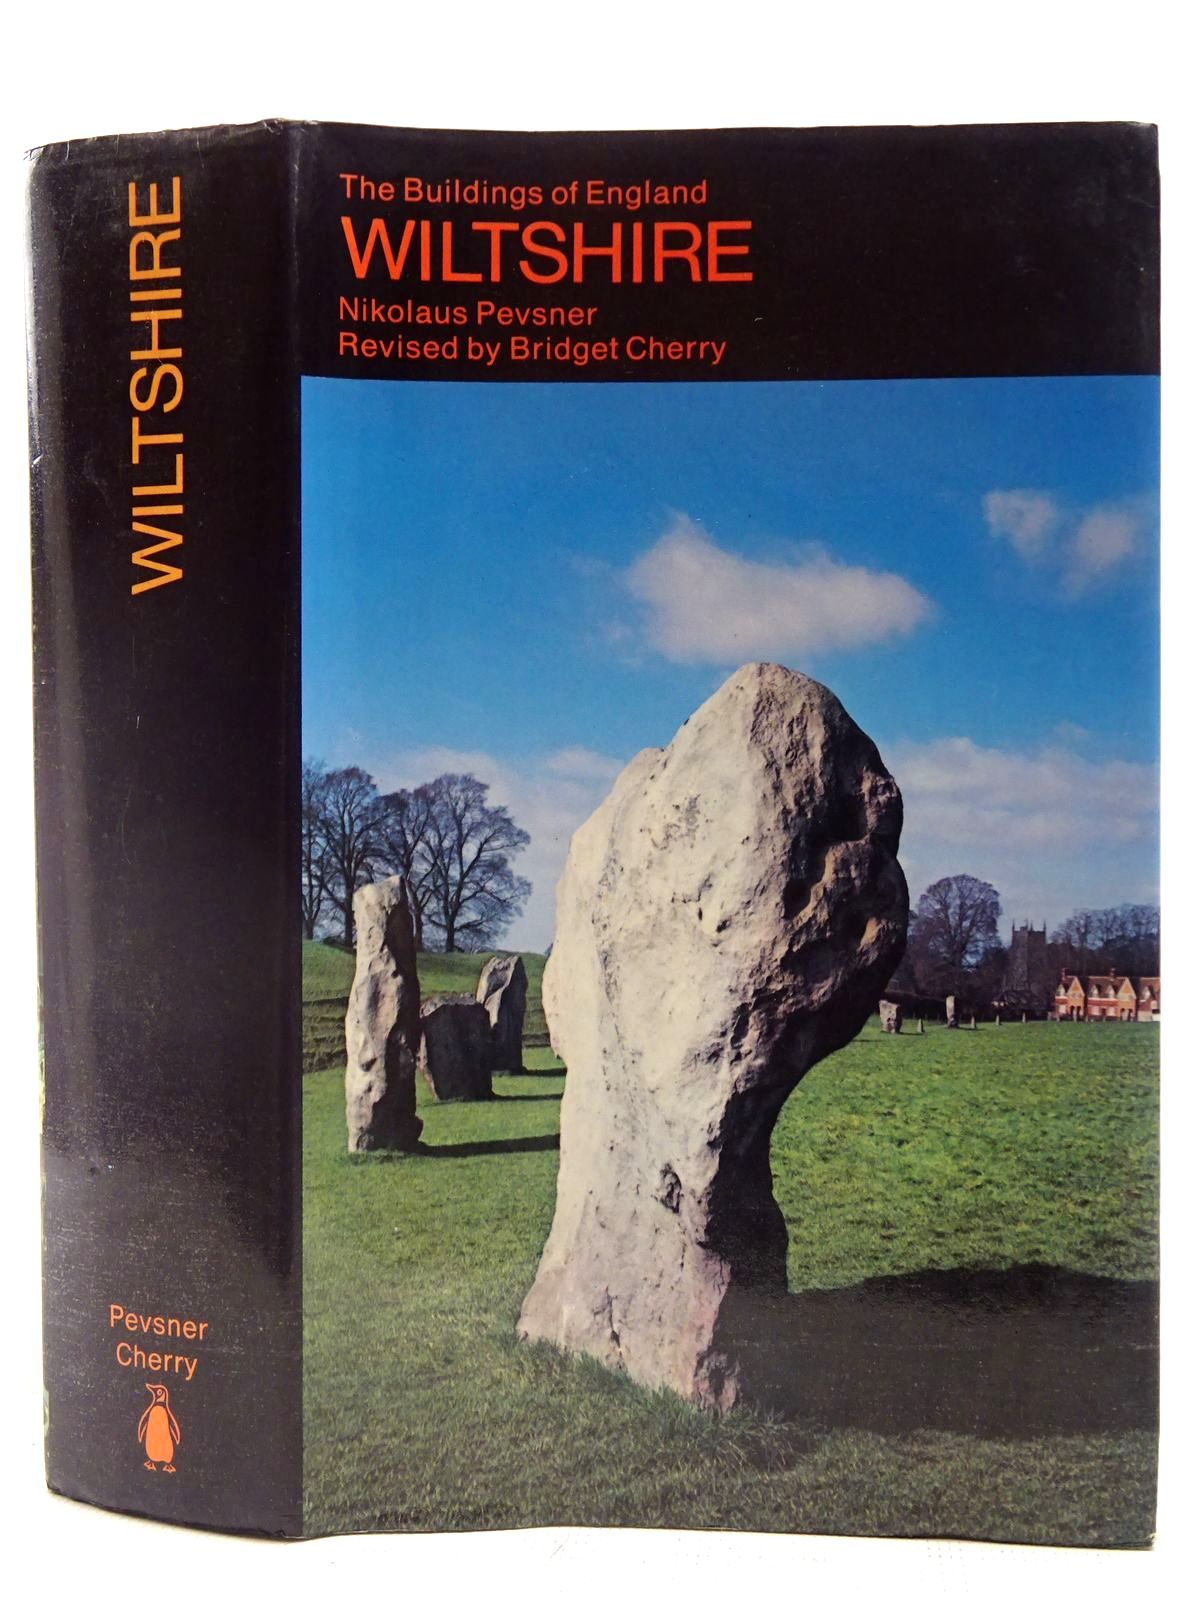 Photo of WILTSHIRE (BUILDINGS OF ENGLAND) written by Pevsner, Nikolaus